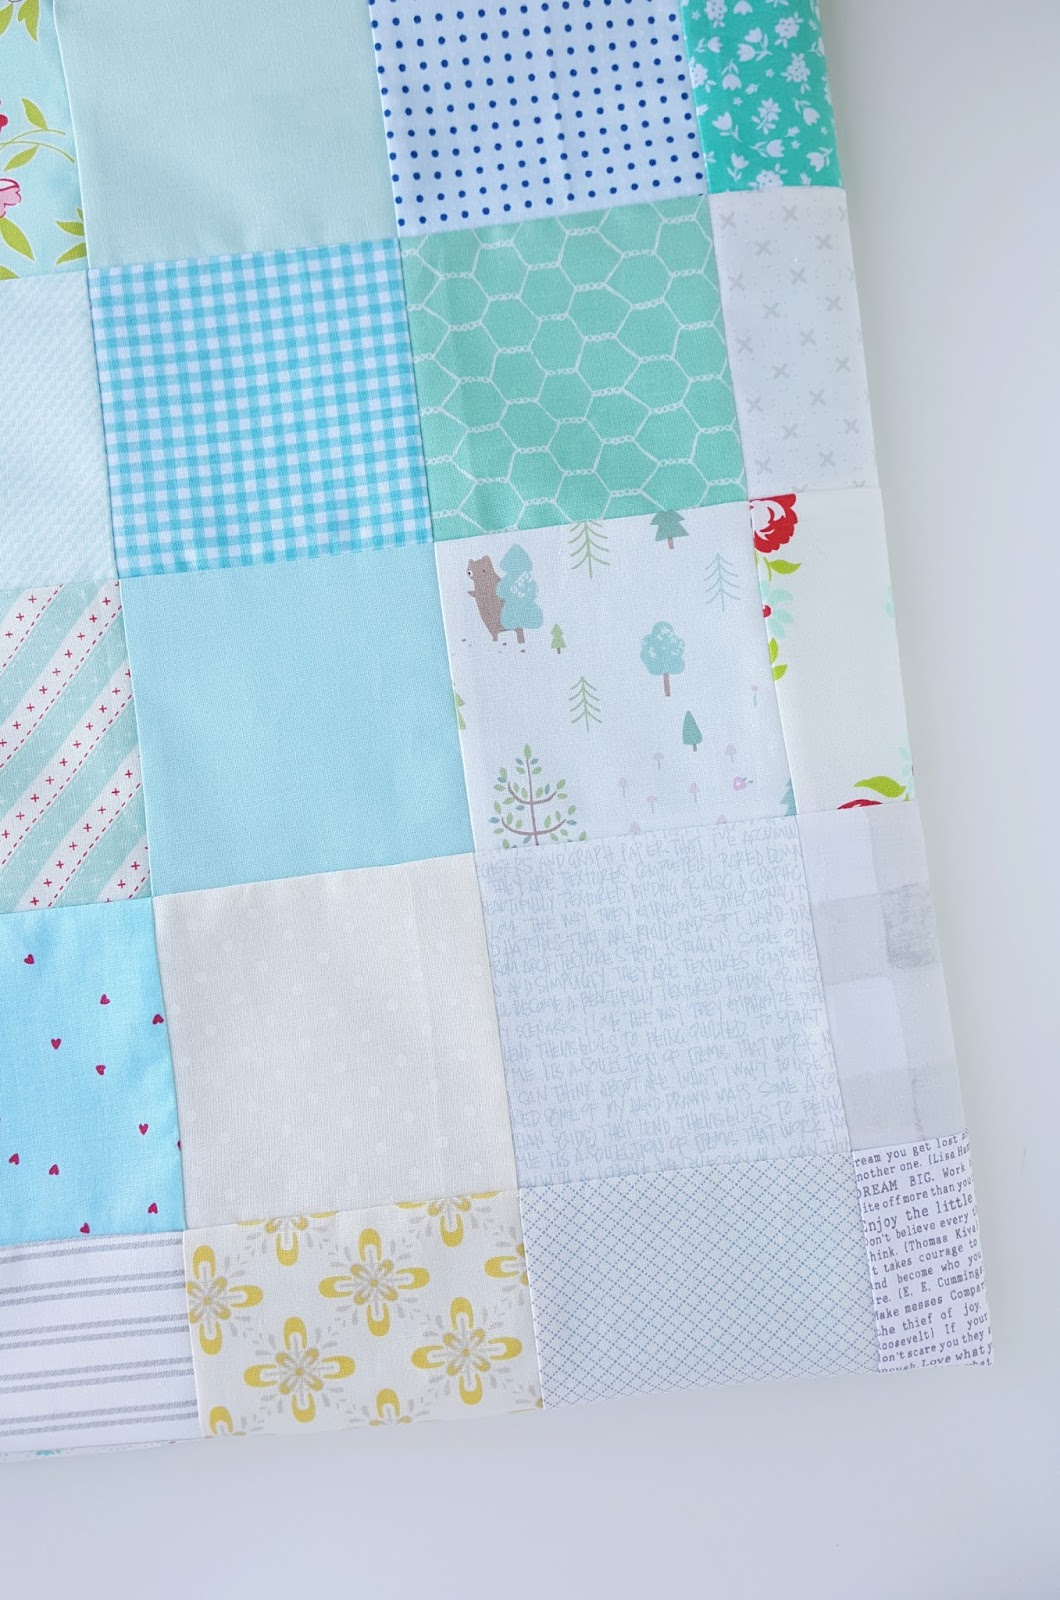 Woodberry way it was a really fun easy quilt to make i followed the layout for the tutorial by diary of a quilter but cut my squares to 4 instead and swapped the baditri Choice Image